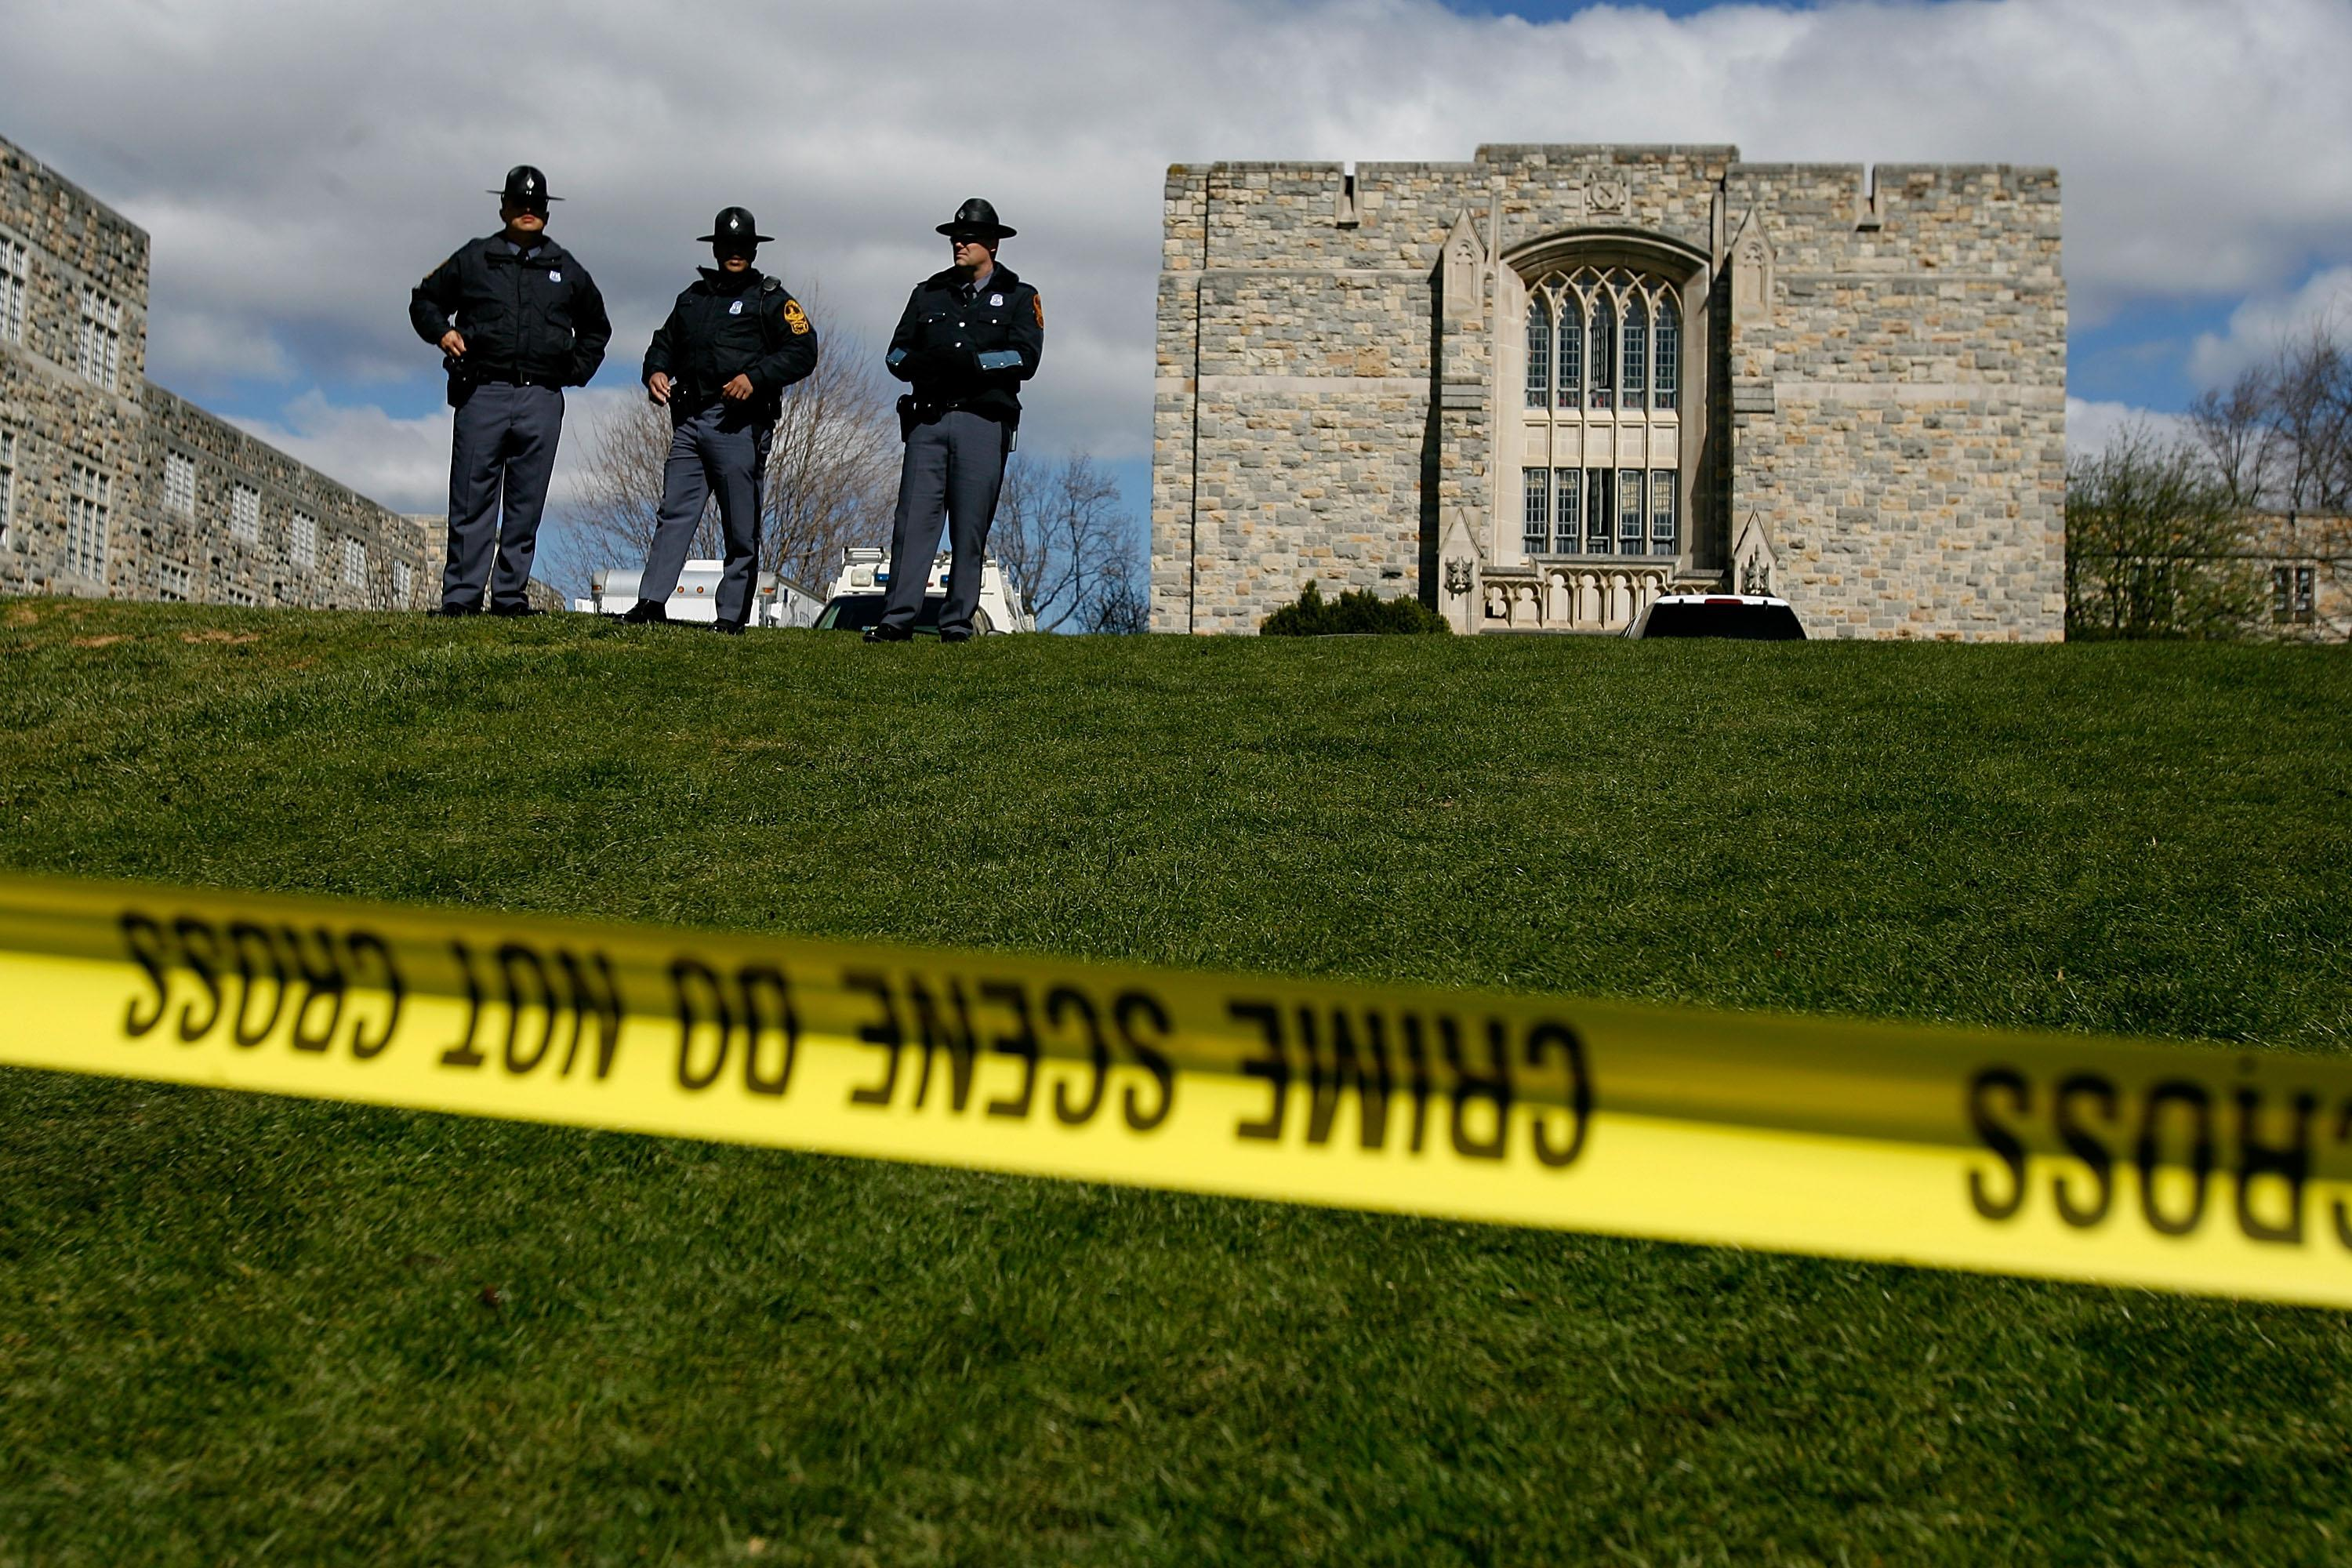 A Virginia Tech Student Tried to Order 5,000 Rounds of Ammunition for His AR-15, Police Say